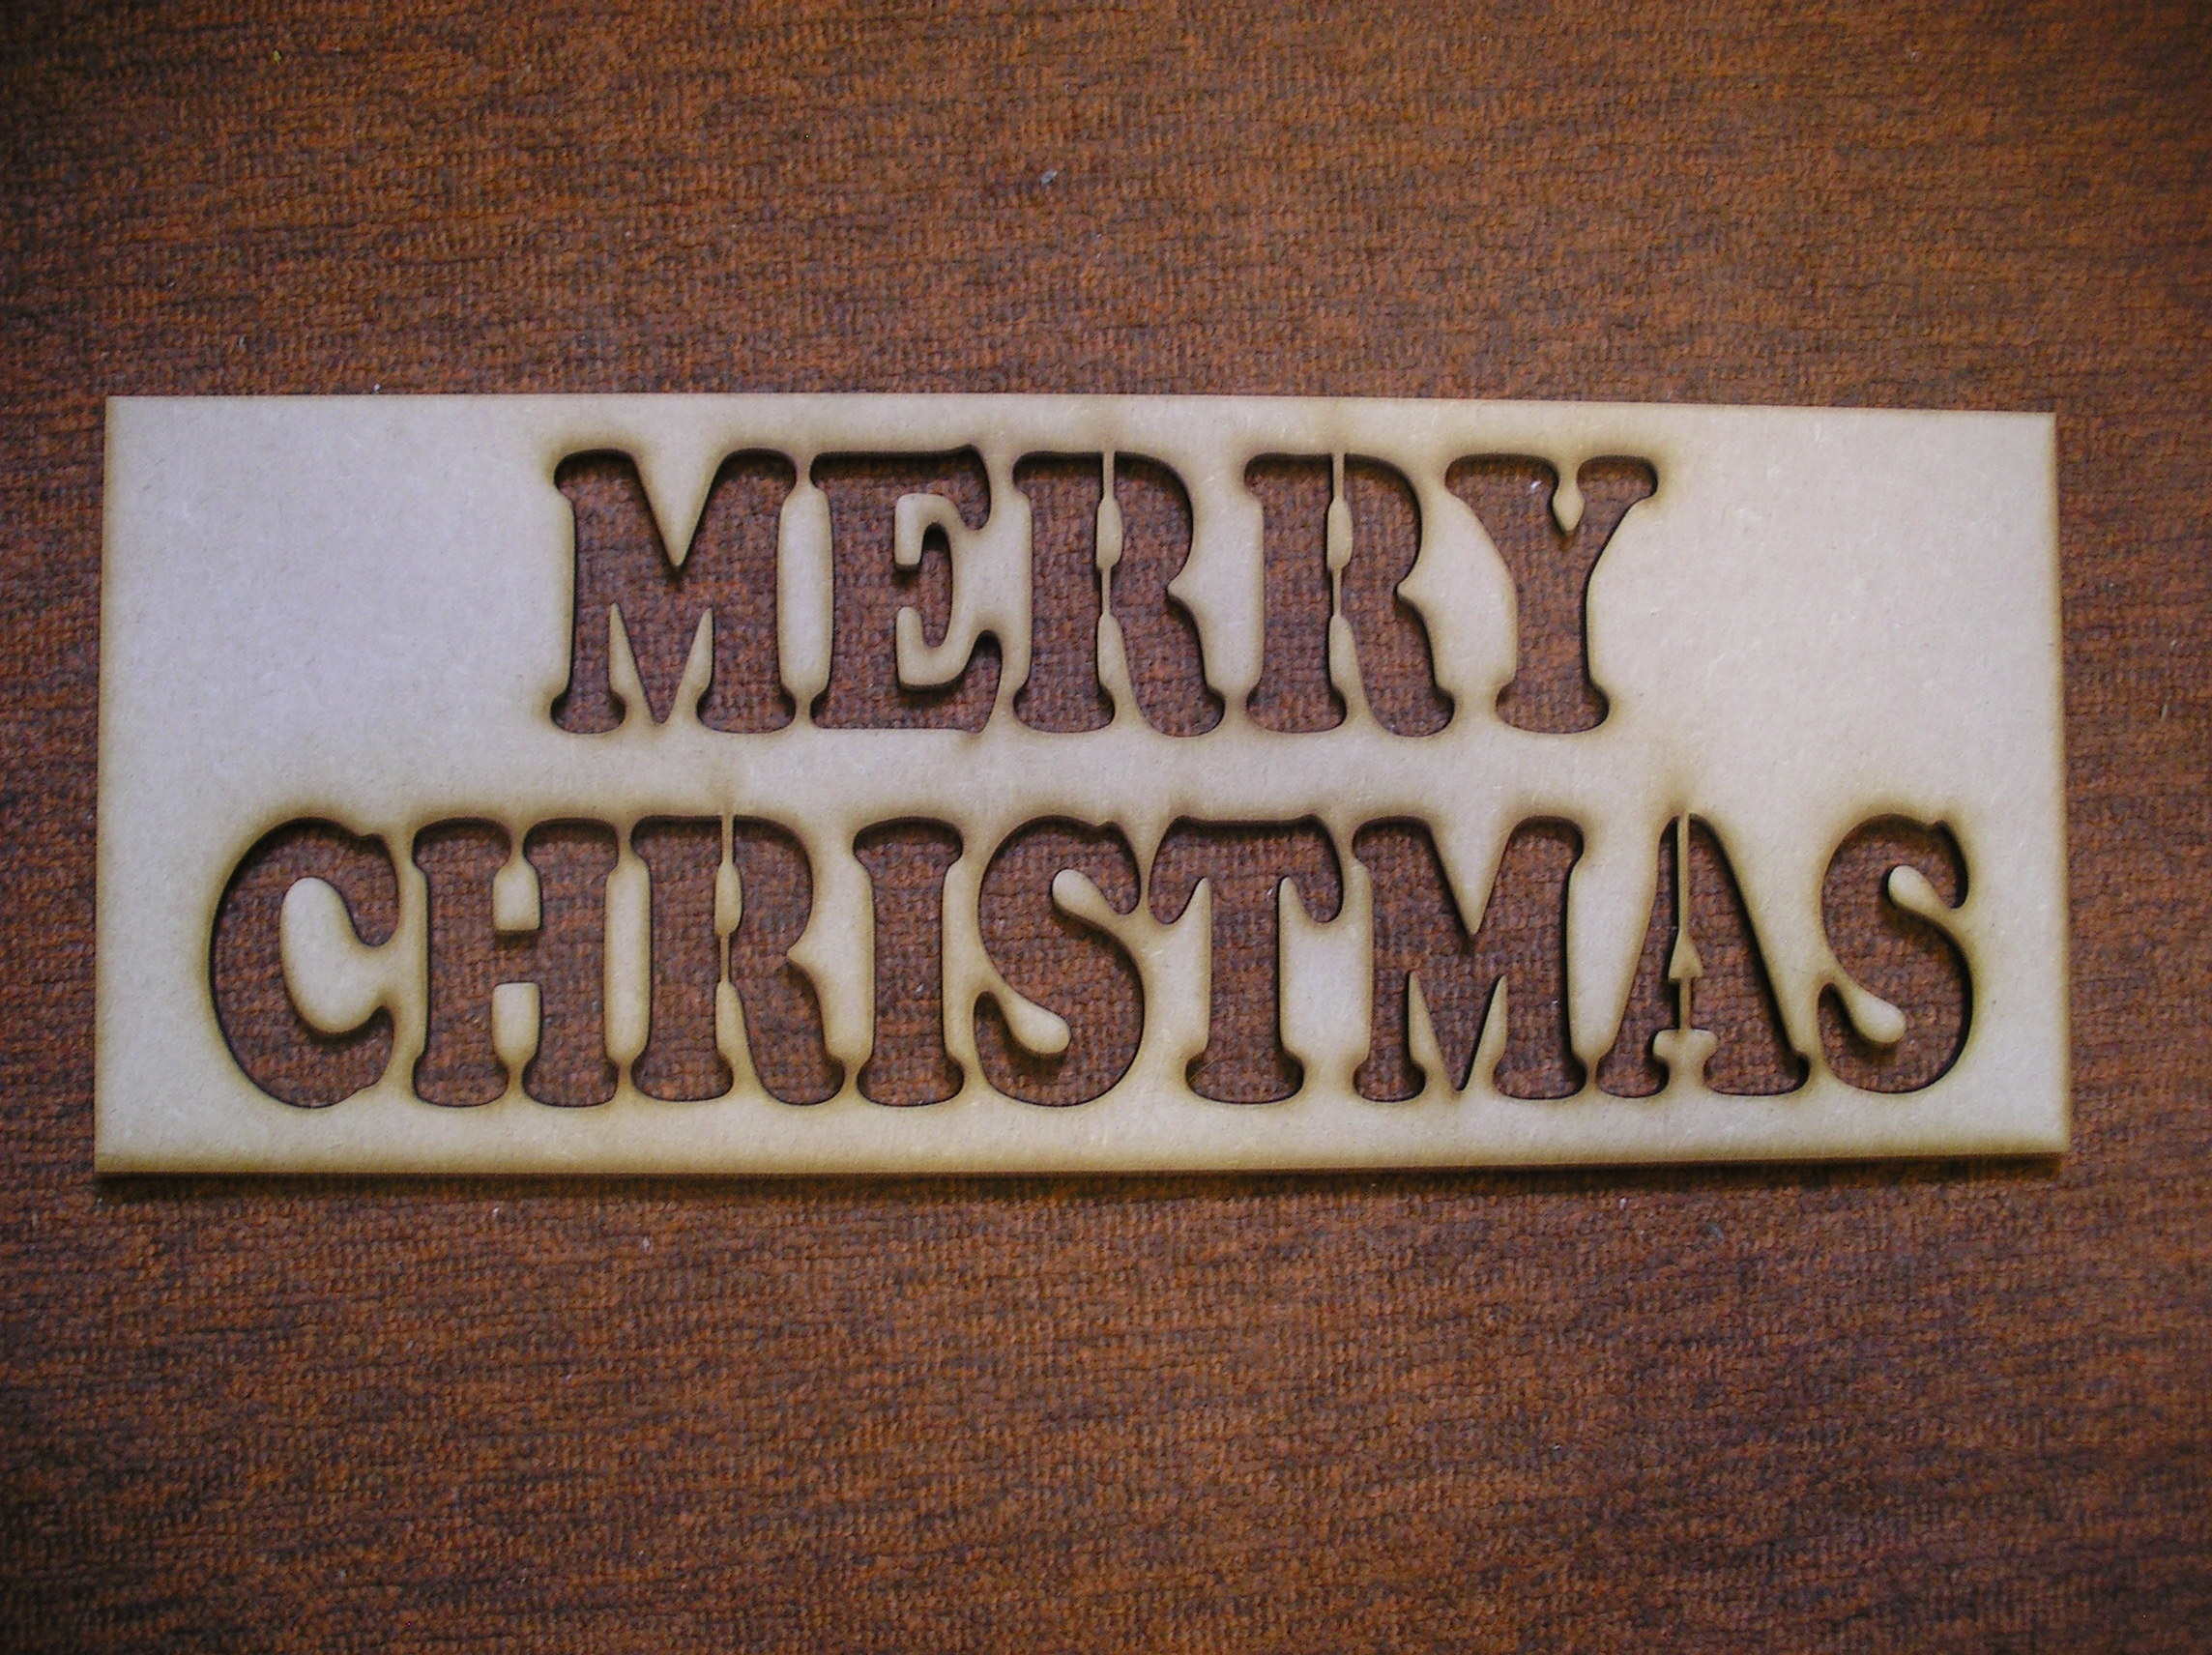 Merry christmas stencil the craft shape shop for Merry christmas letter stencils